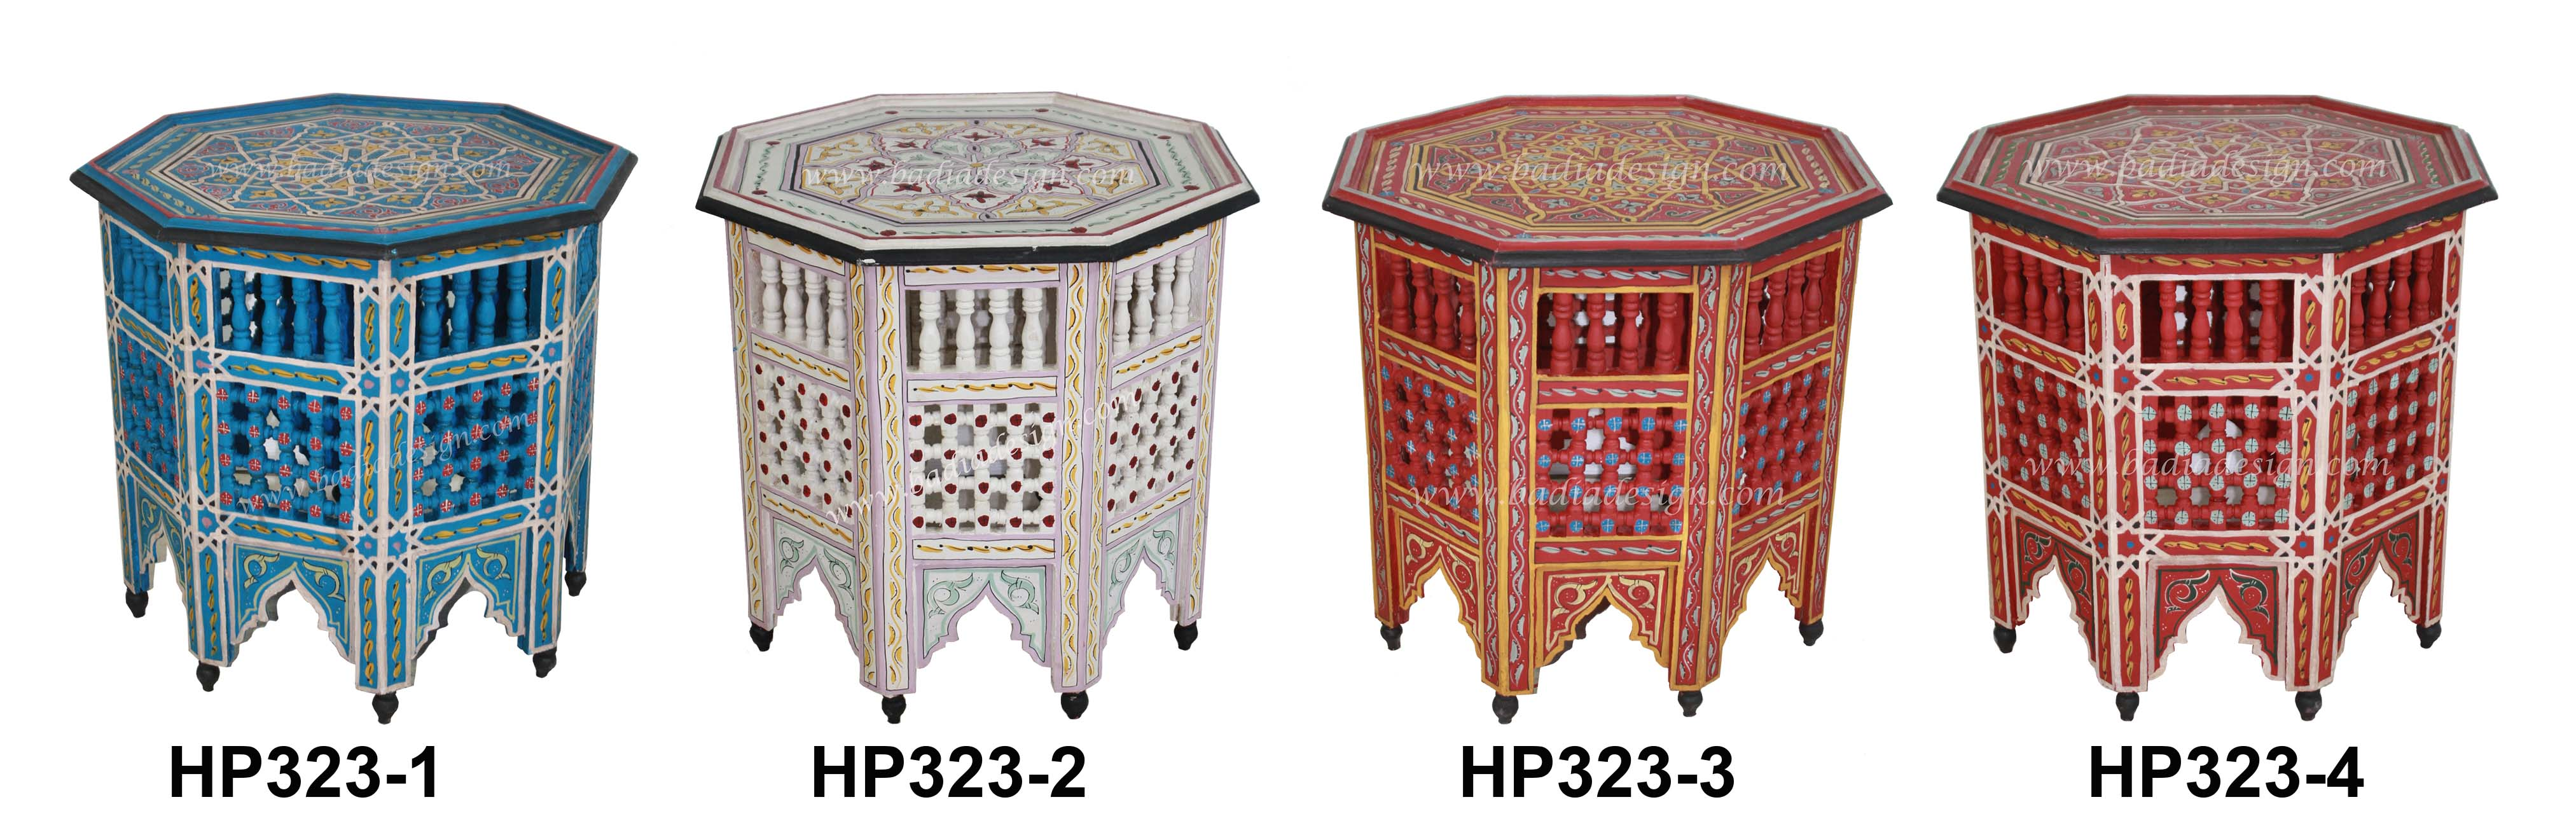 moroccan-hand-painted-side-table-hp323.jpg